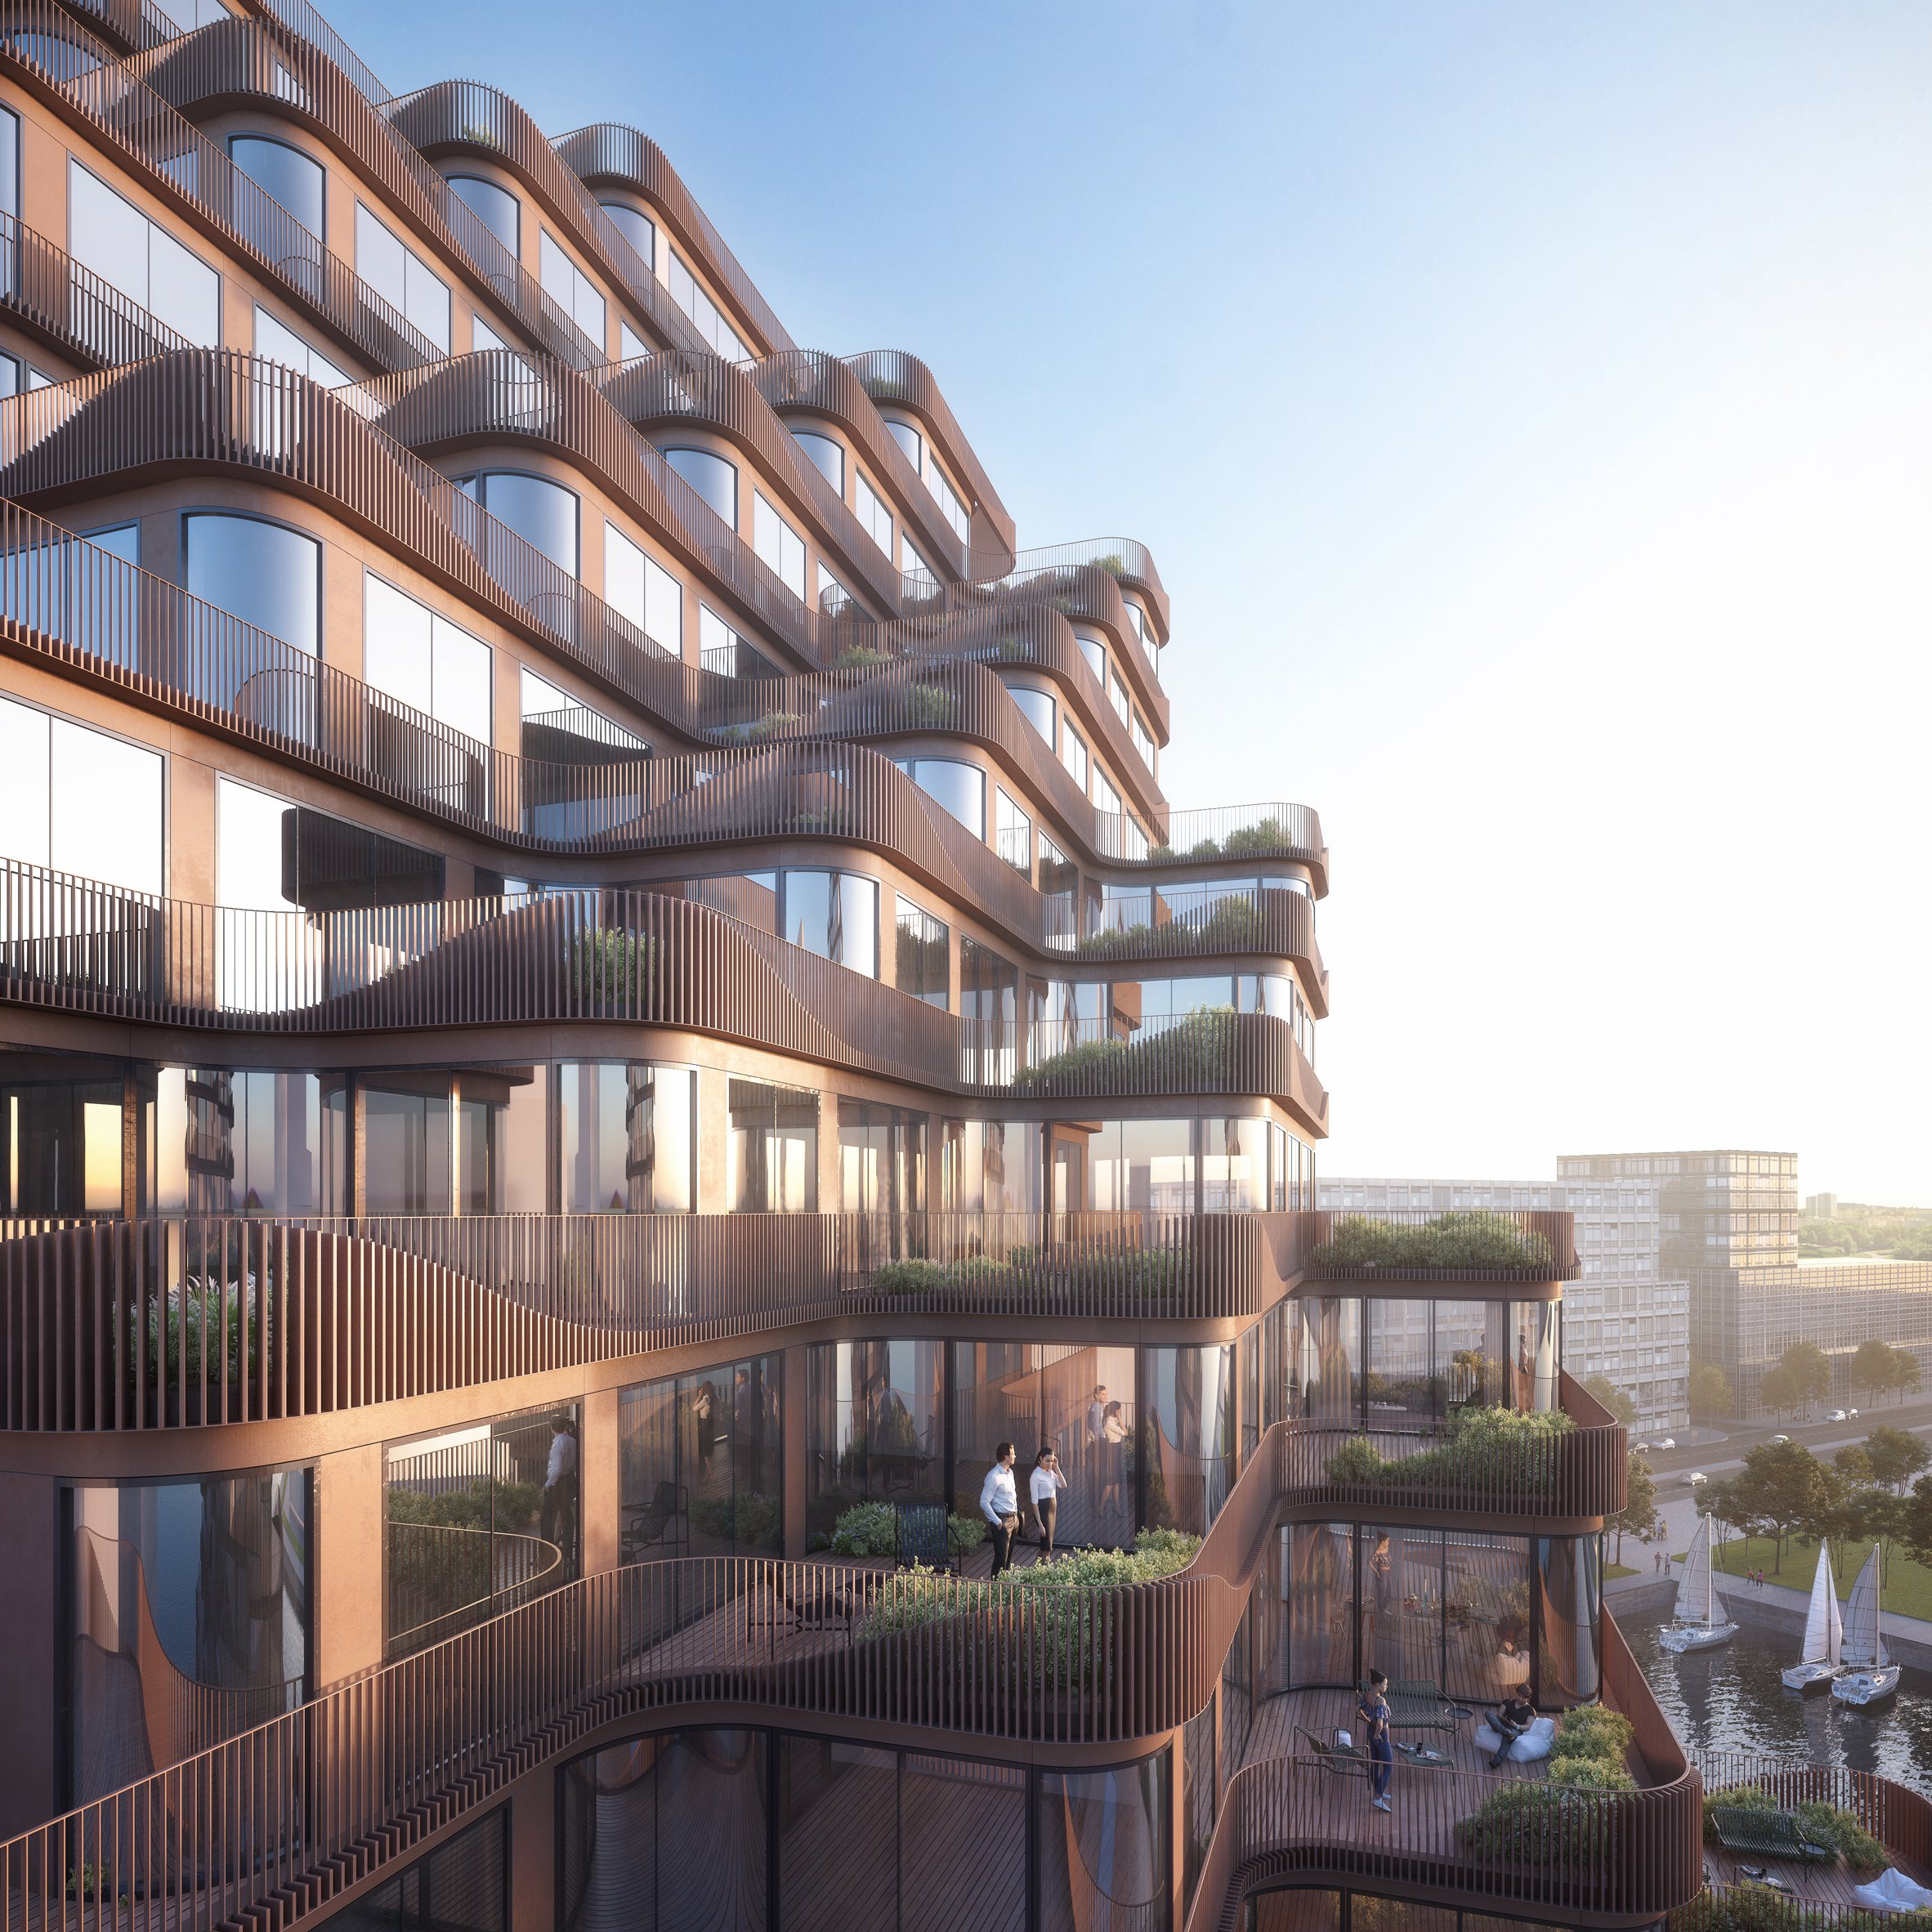 Undulating balconies to wrap 3xns condos on toronto waterfront